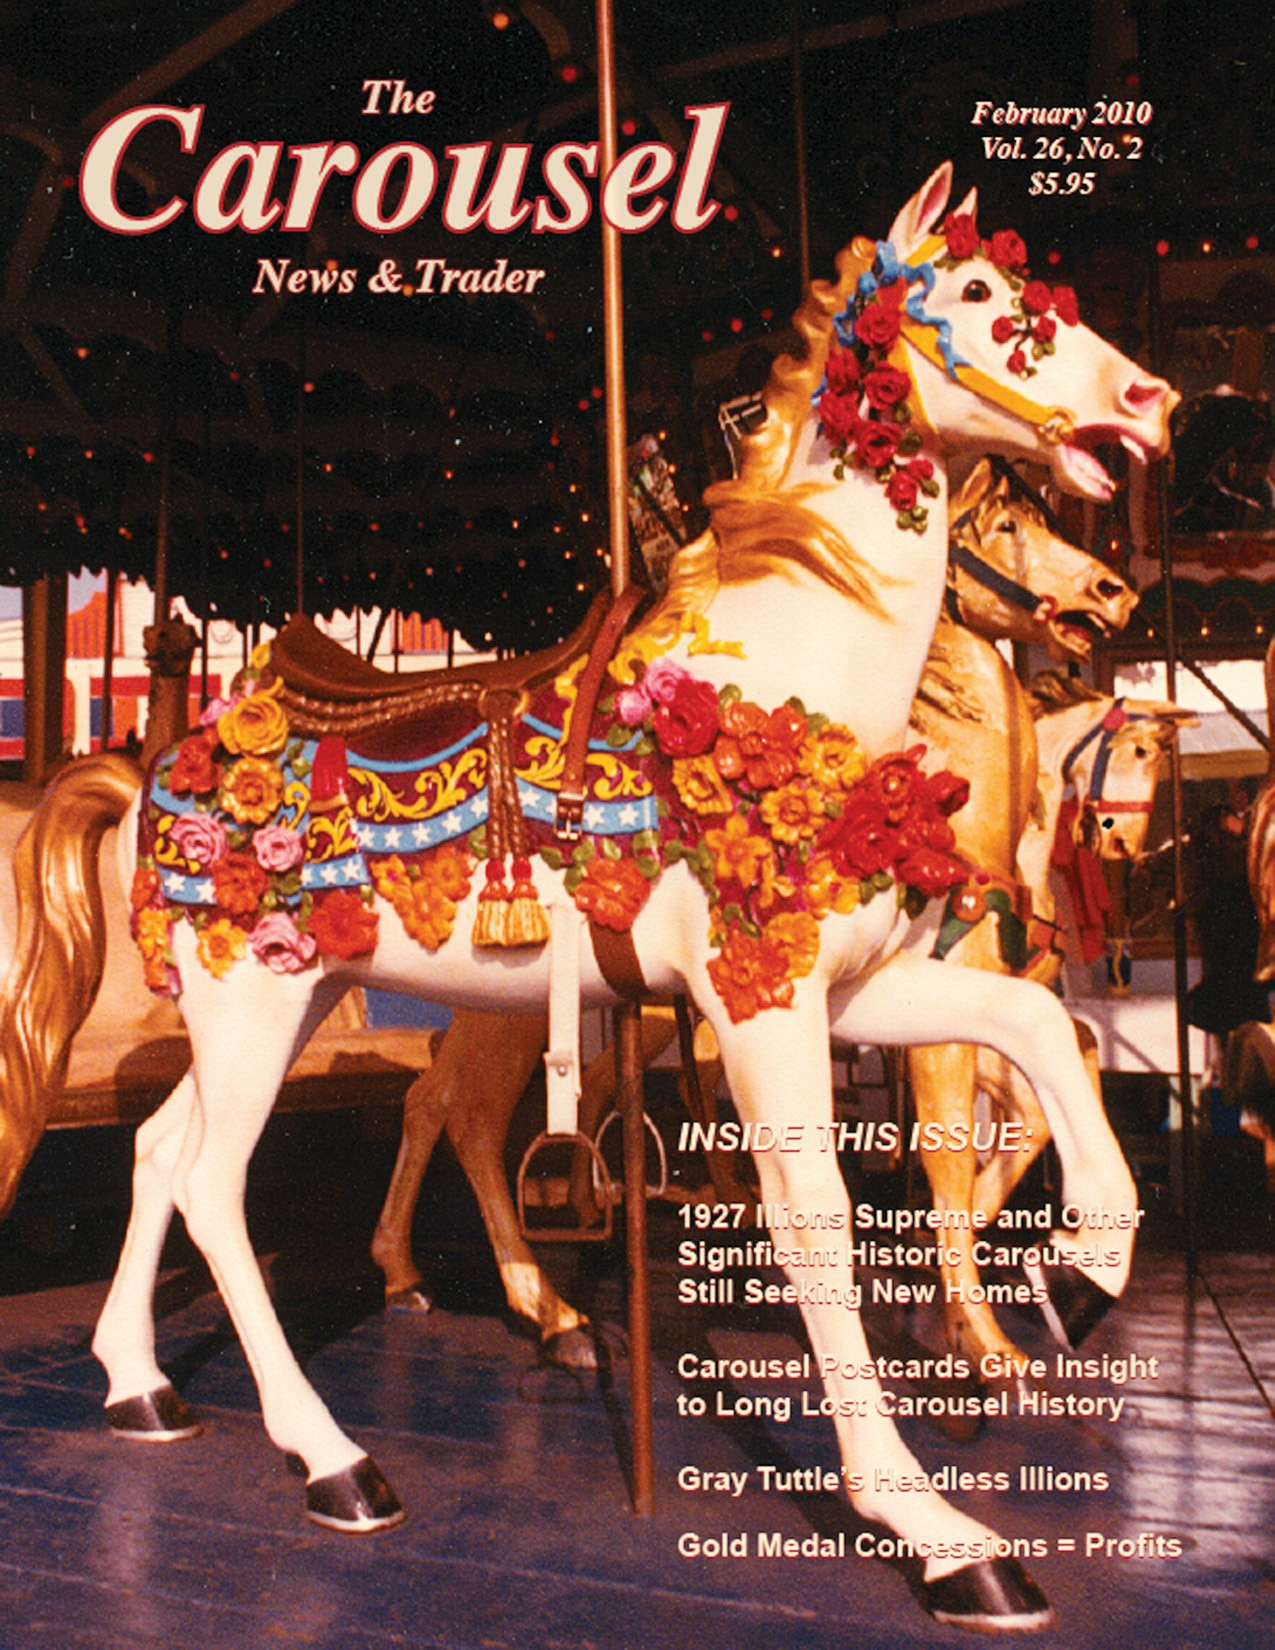 Carousel-news-cover-2-Illions-Supreme-carousel-Rose-Horse-Feb-2010